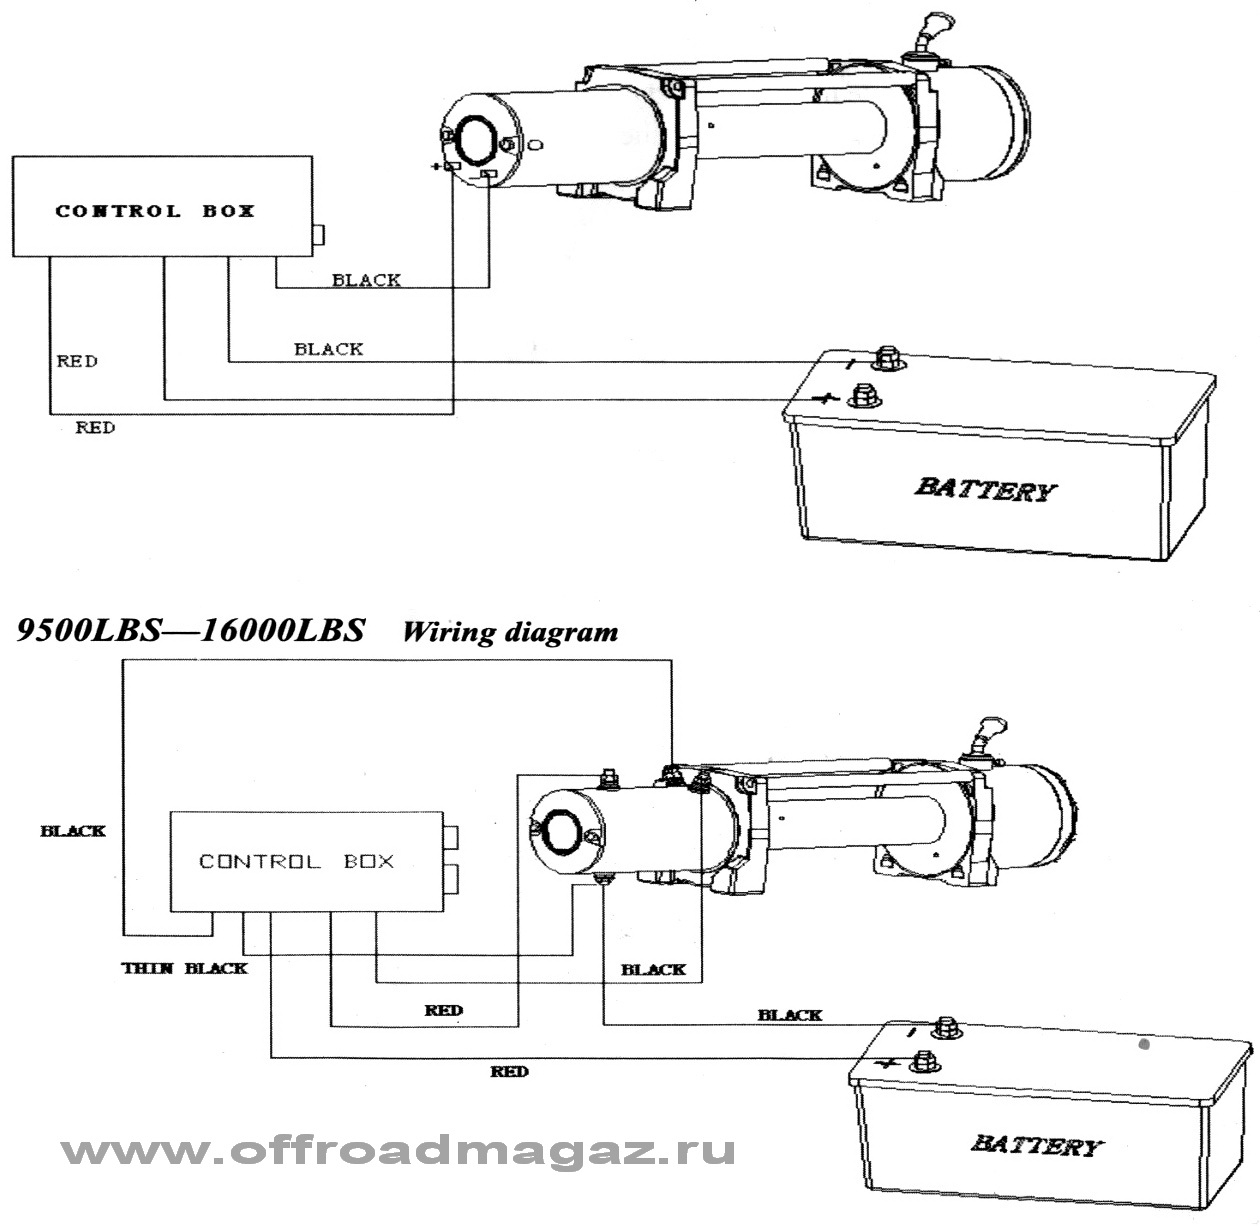 Warn Winch Wiring Diagram Solenoid At 62135 To Beautiful With At - Warn Winch Wiring Diagram Solenoid